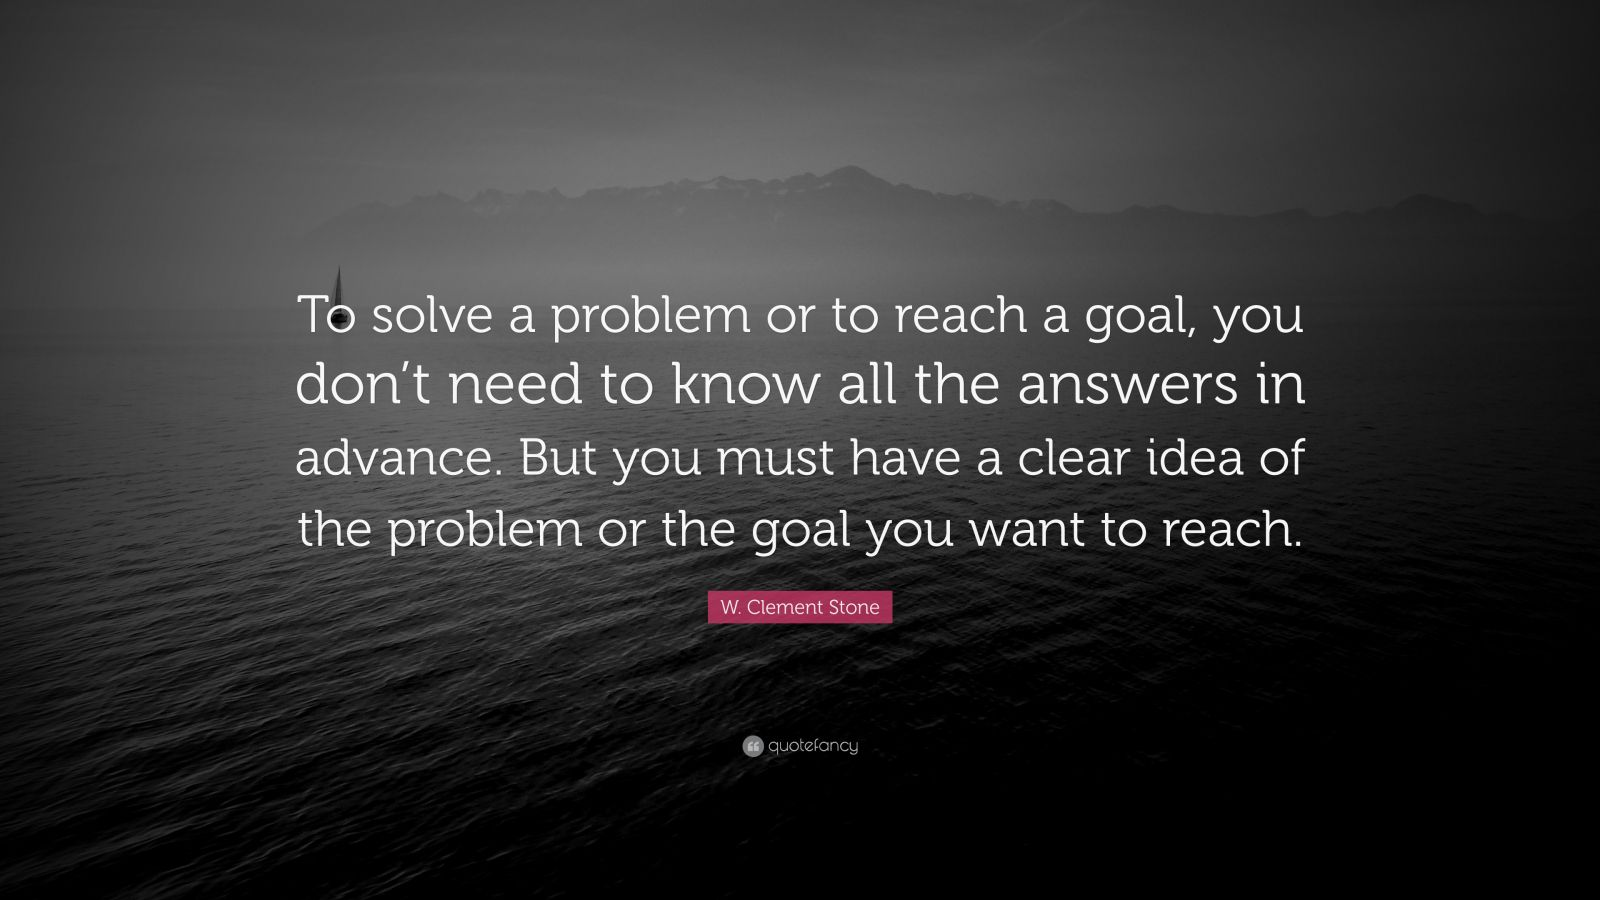 "W. Clement Stone Quote: ""To solve a problem or to reach a goal, you don't need to know all the answers in advance. But you must have a clear idea of the problem or the goal you want to reach."""